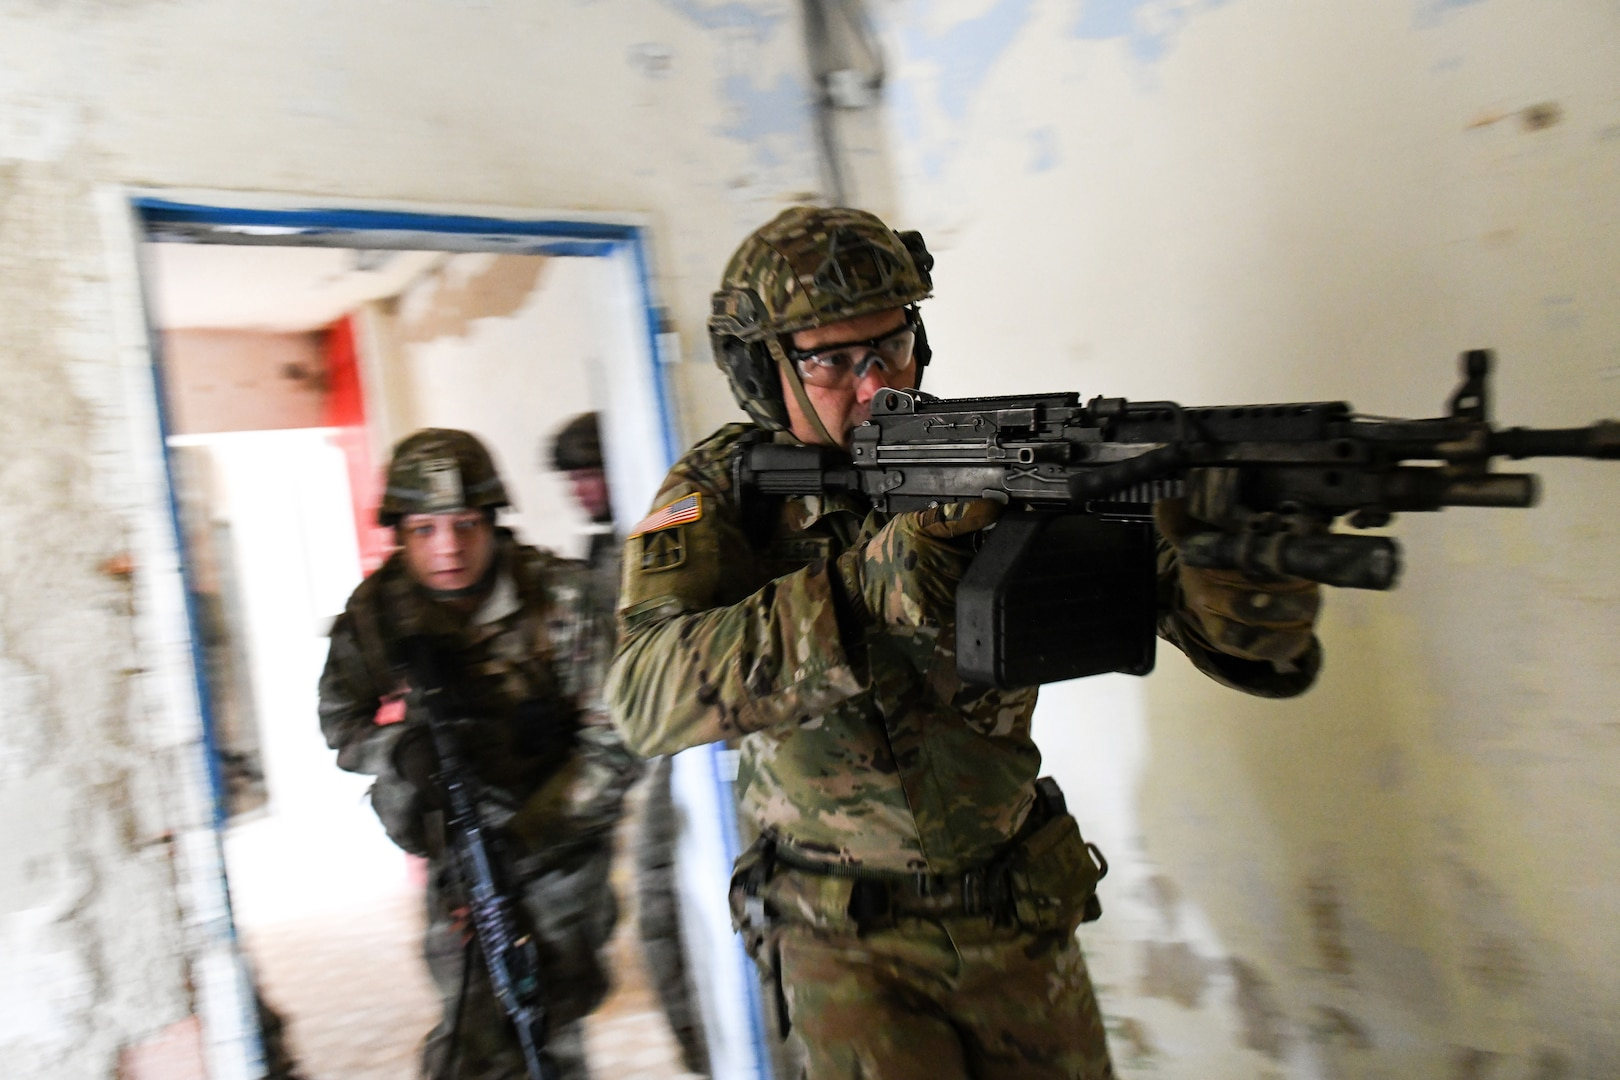 Spc. Jerrad Nicholson, with the Indiana Army National Guard's 1st Squadron, 152nd Cavalry Regiment, leads Soldiers into a room during Slovak Shield 2019, a training exercise in Lešt, Slovakia, Nov. 10, 2019, as part of the Defense Department's State Partnership Program.